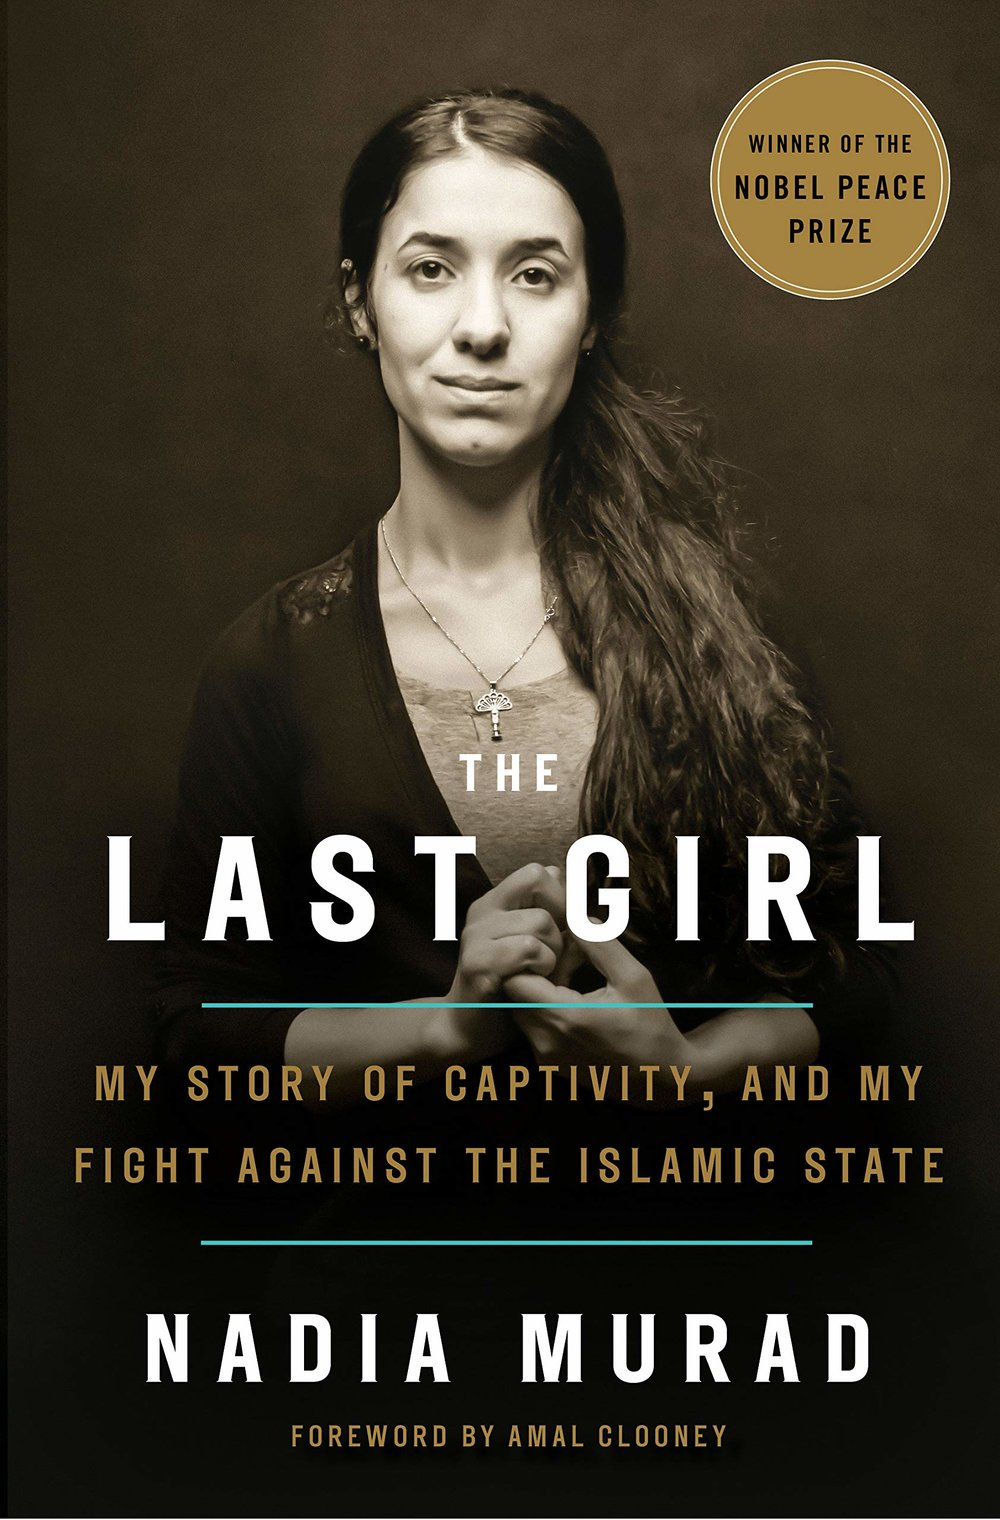 """The Last Girl: My Story of Captivity and my Fight Against the Islamic State - by Nadia Murad""""This year's Nobel Peace Prize winner has published a riveting book that captures how her family and community were ripped apart and follows her devastating but courageous path to reconnect with the remaining family that was not murdered. This book brings awareness to the types of devastation that many women and families still endure.""""- Jennifer D'Avanzo, Senior Project Manager"""